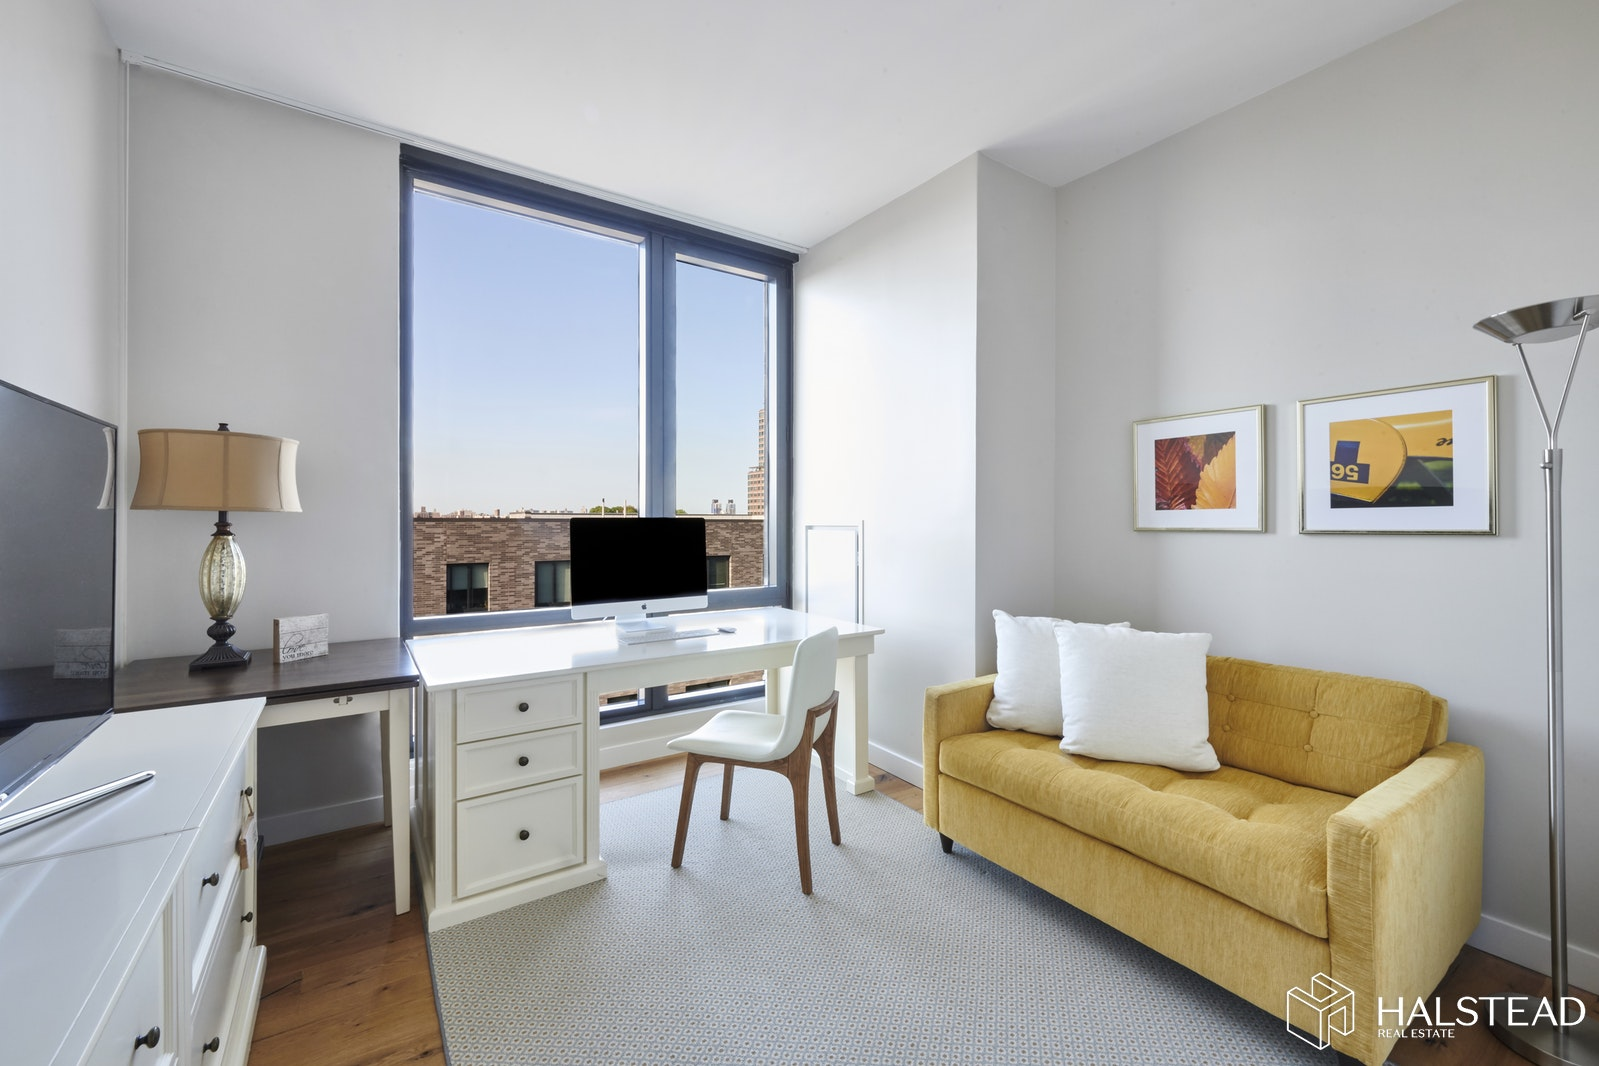 23 WEST 116TH STREET 10A, Central Harlem, $1,895,000, Web #: 20174179